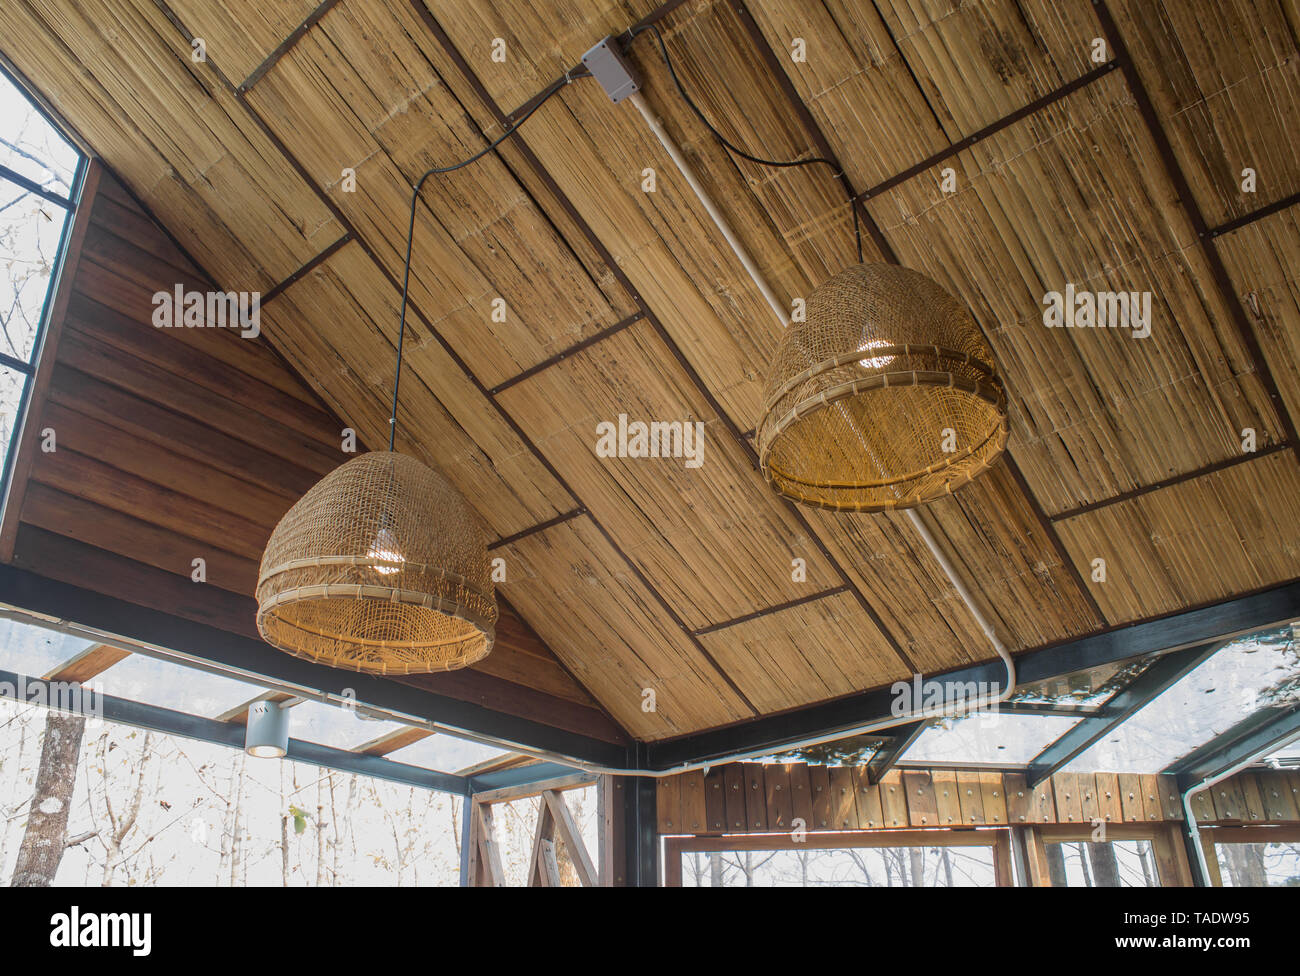 Coop And Lamp On Ceiling For Interior Design Room Interior Design Room In Country Loft Style Interior Design Room In Part Of Living Room Stock Photo Alamy